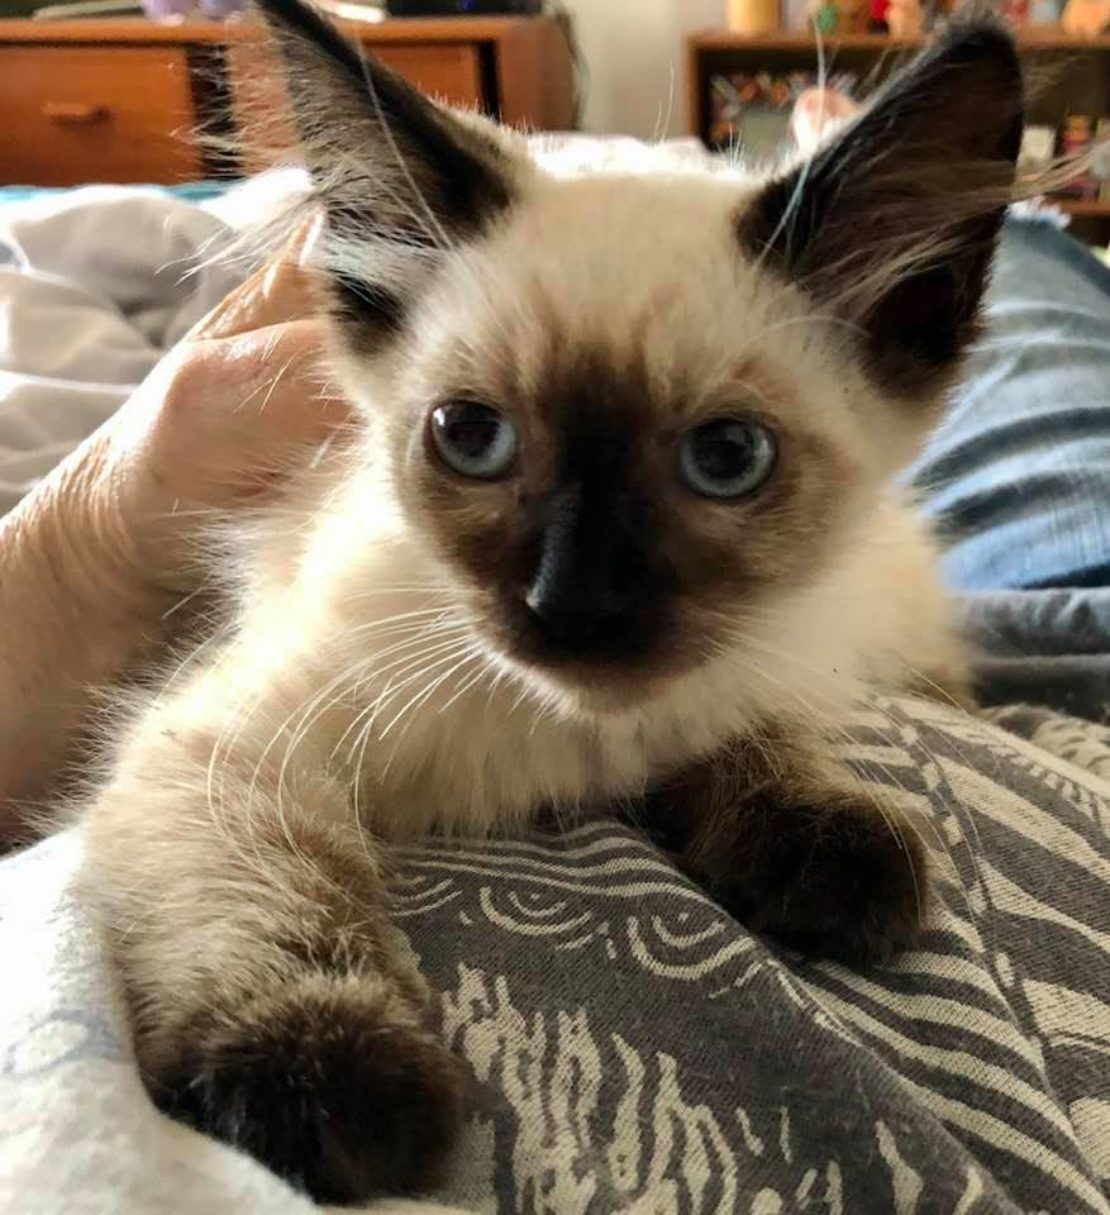 Sealpoint Siamese kitten looks to the left and relaxes on a duvet.